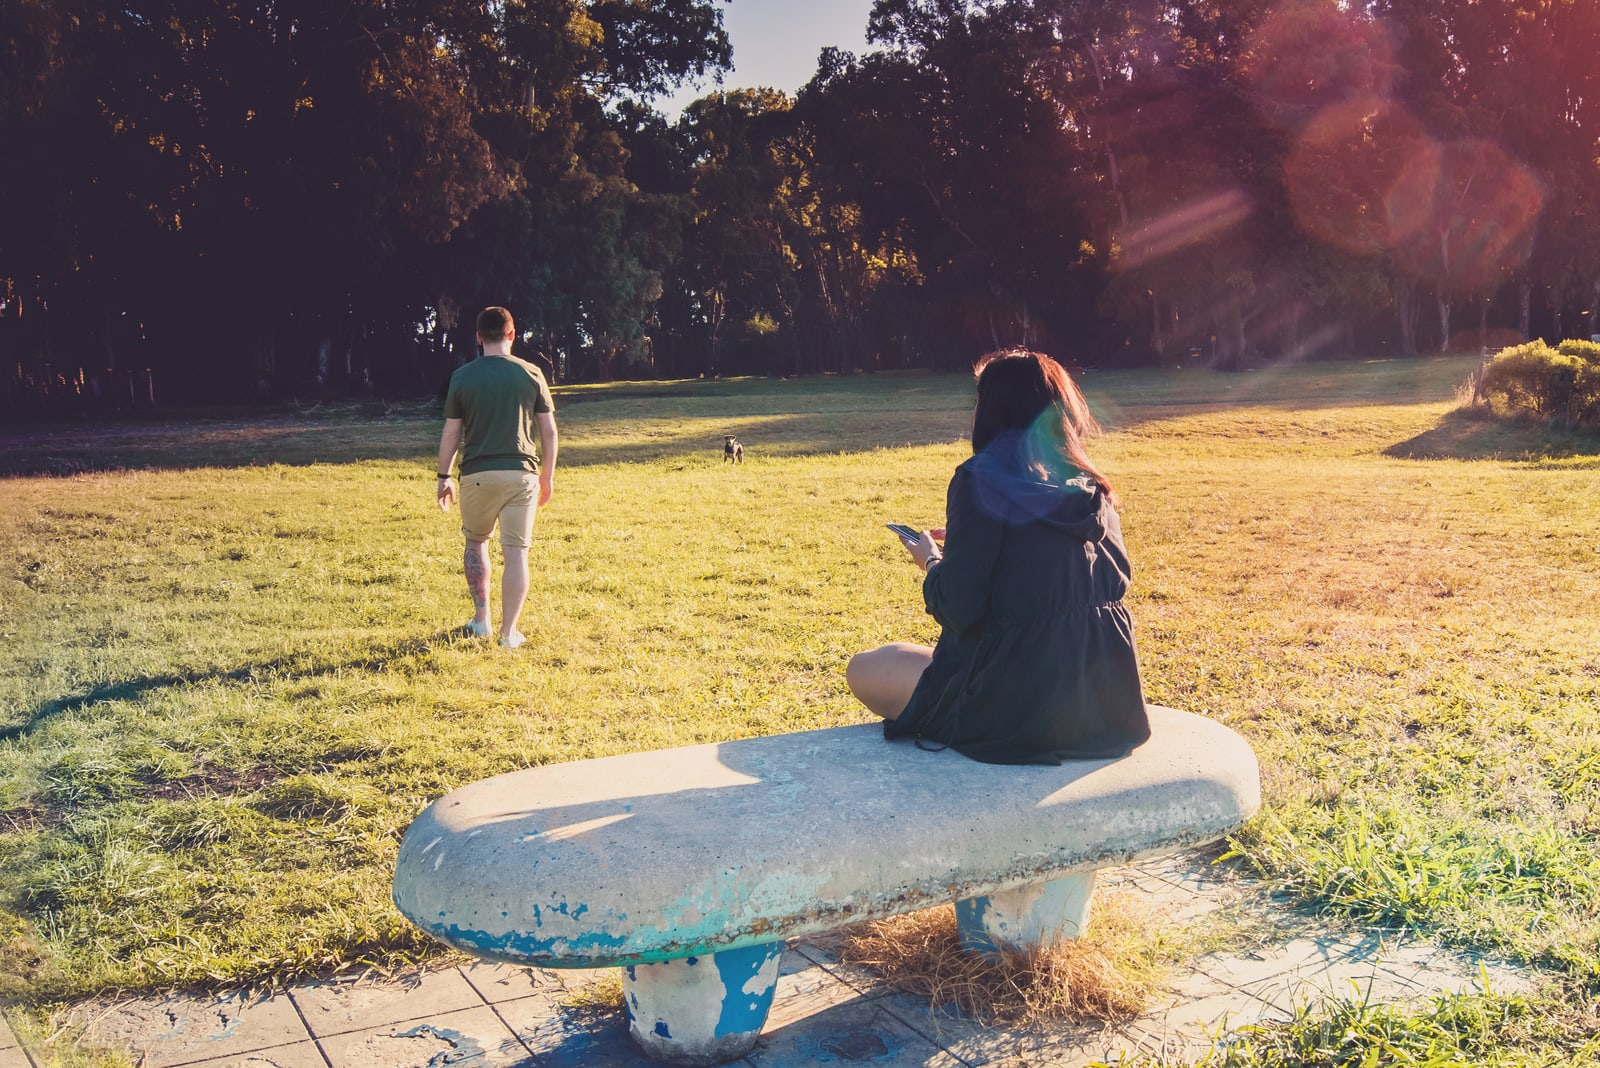 a man walks away from a woman sitting on a concrete bench in a park